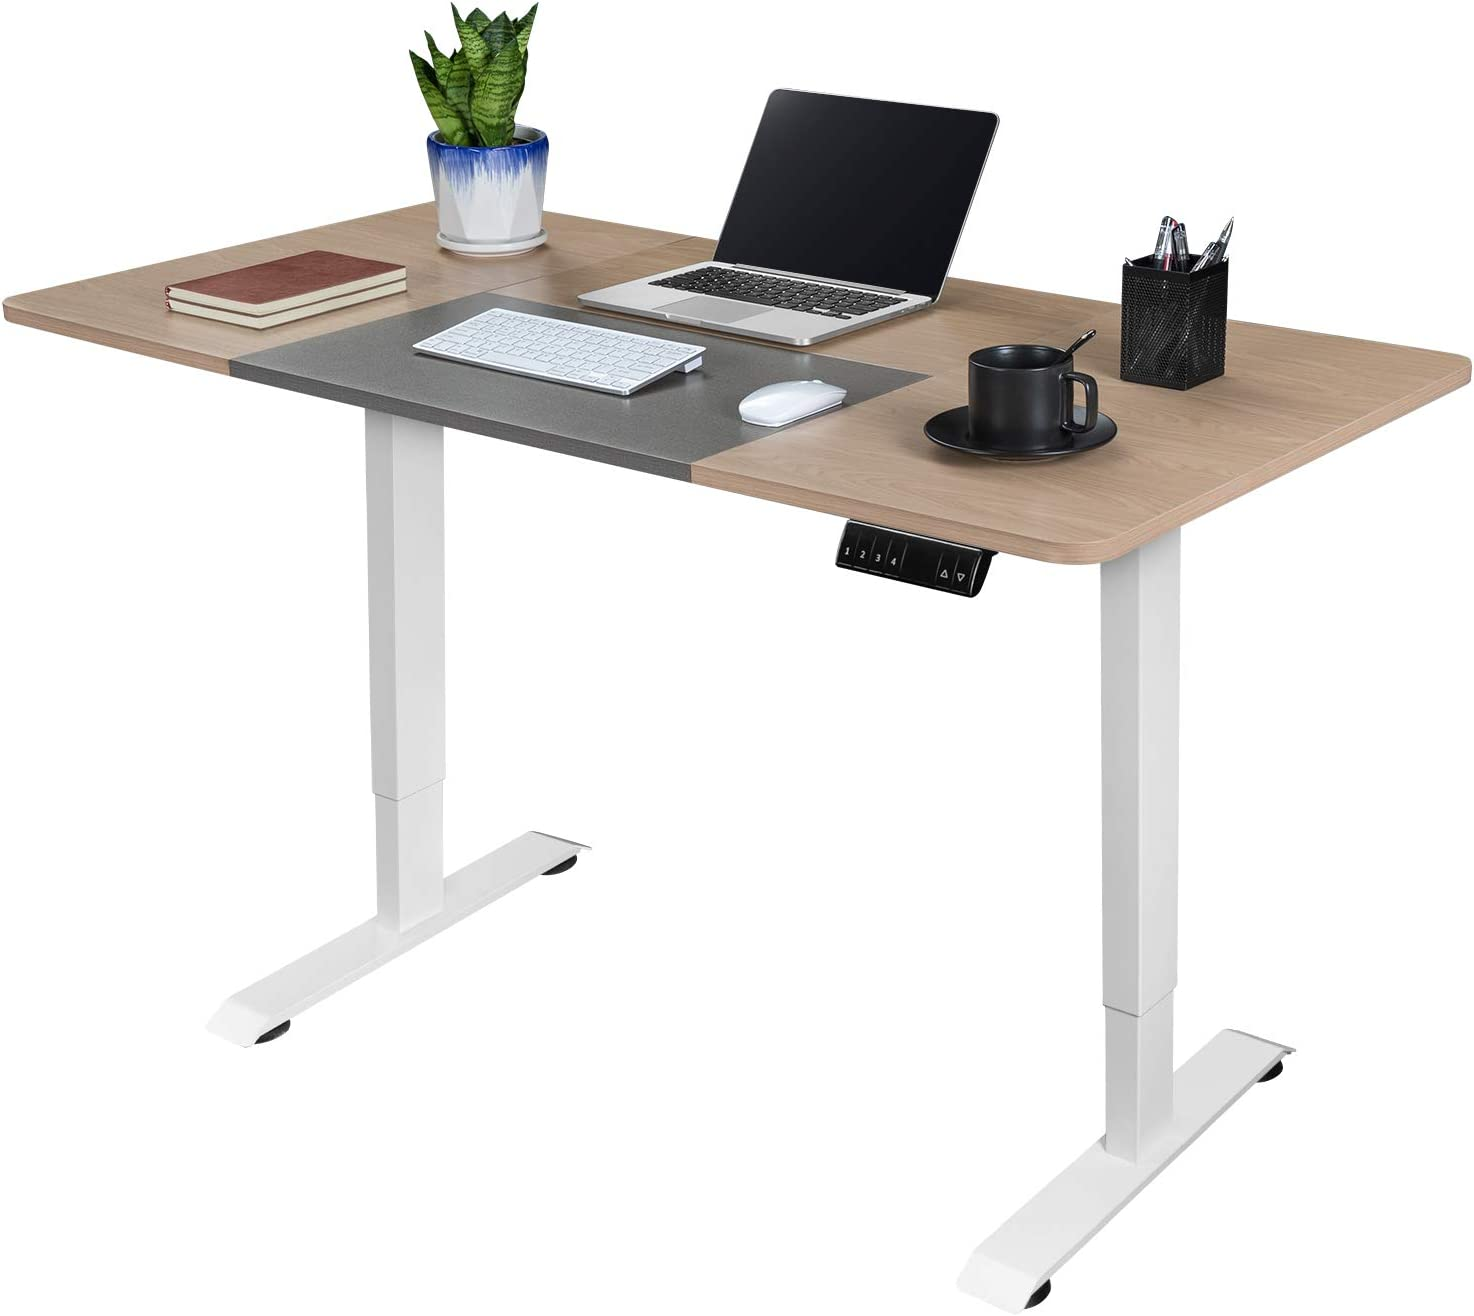 Greesum 55 Inch Electric Height Adjustable Home Office Standing Desk, Modern Design Spacious Computer Table for Healthy Working, Beige